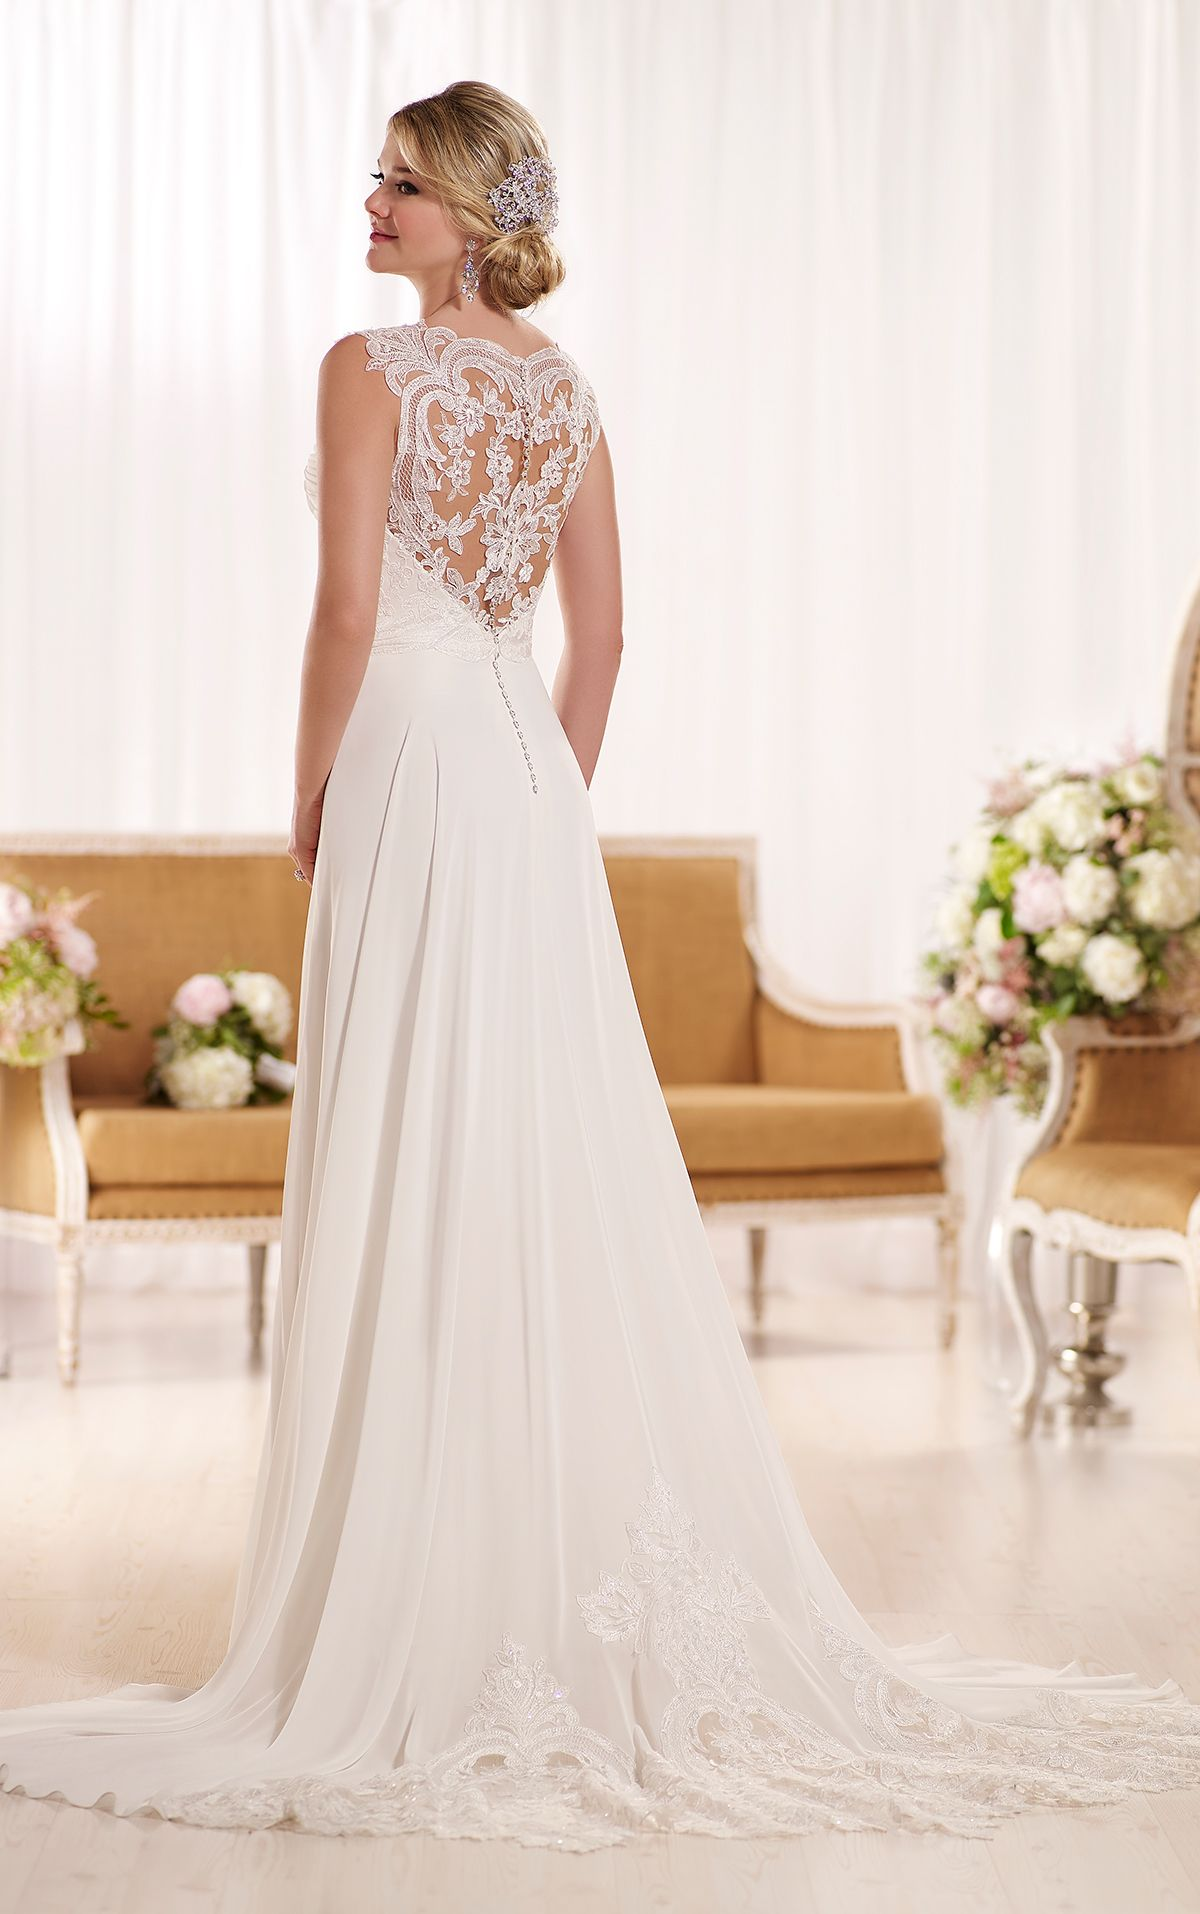 Chiffon wedding dresses  Lace back wedding dress from Essense of Australia D  Vestidos